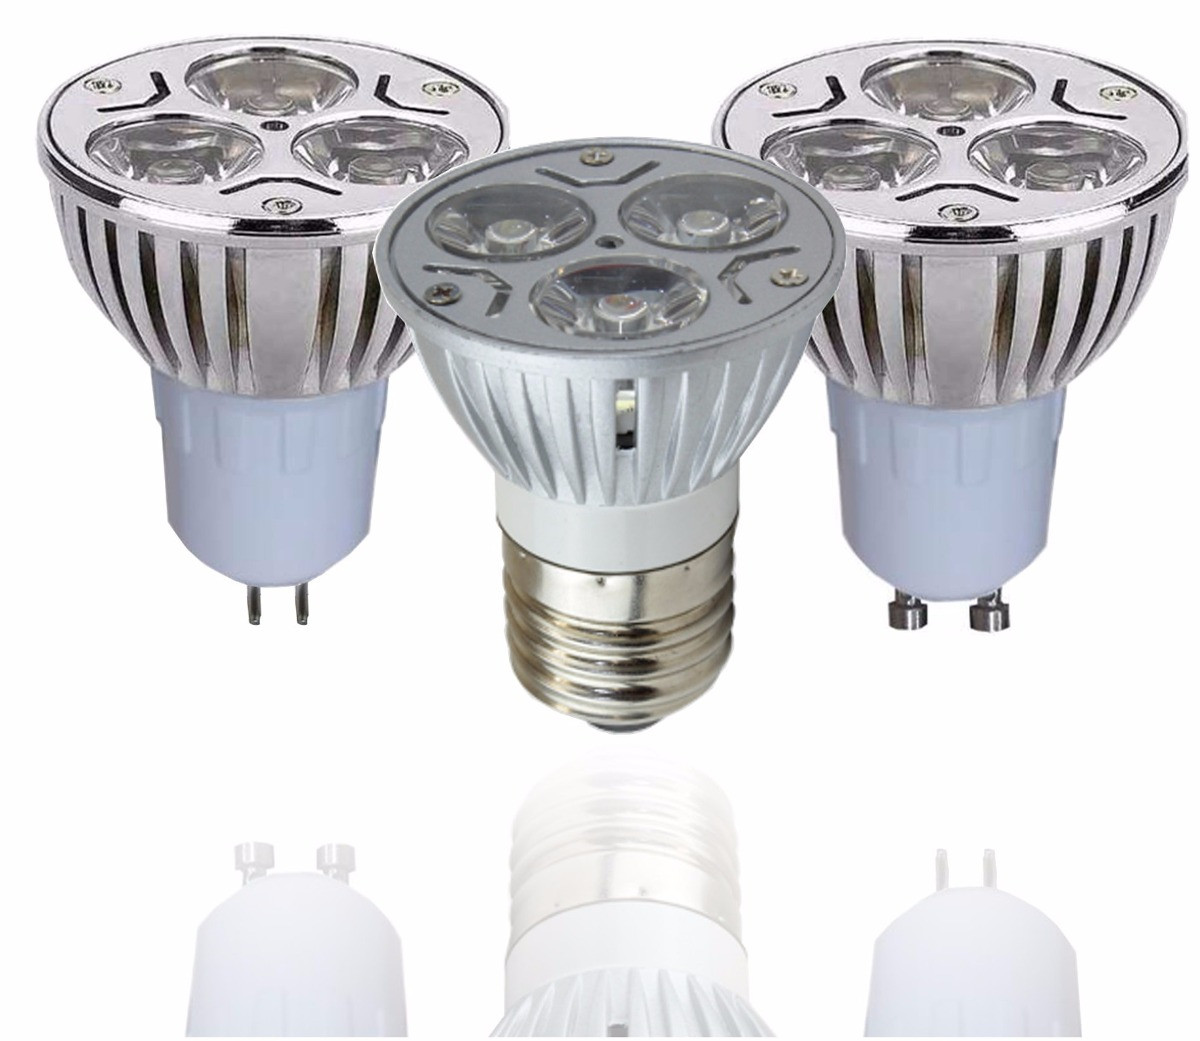 Focos Led Empotrables Extraplanos Contemporáneo Foco Led Dicroico E27 Y Mr16 De 3w 127 Watts $ 35 00 En Of Focos Led Empotrables Extraplanos Magnífica Pra Set 2 Focos Led Empotrables Premium Line Decodice